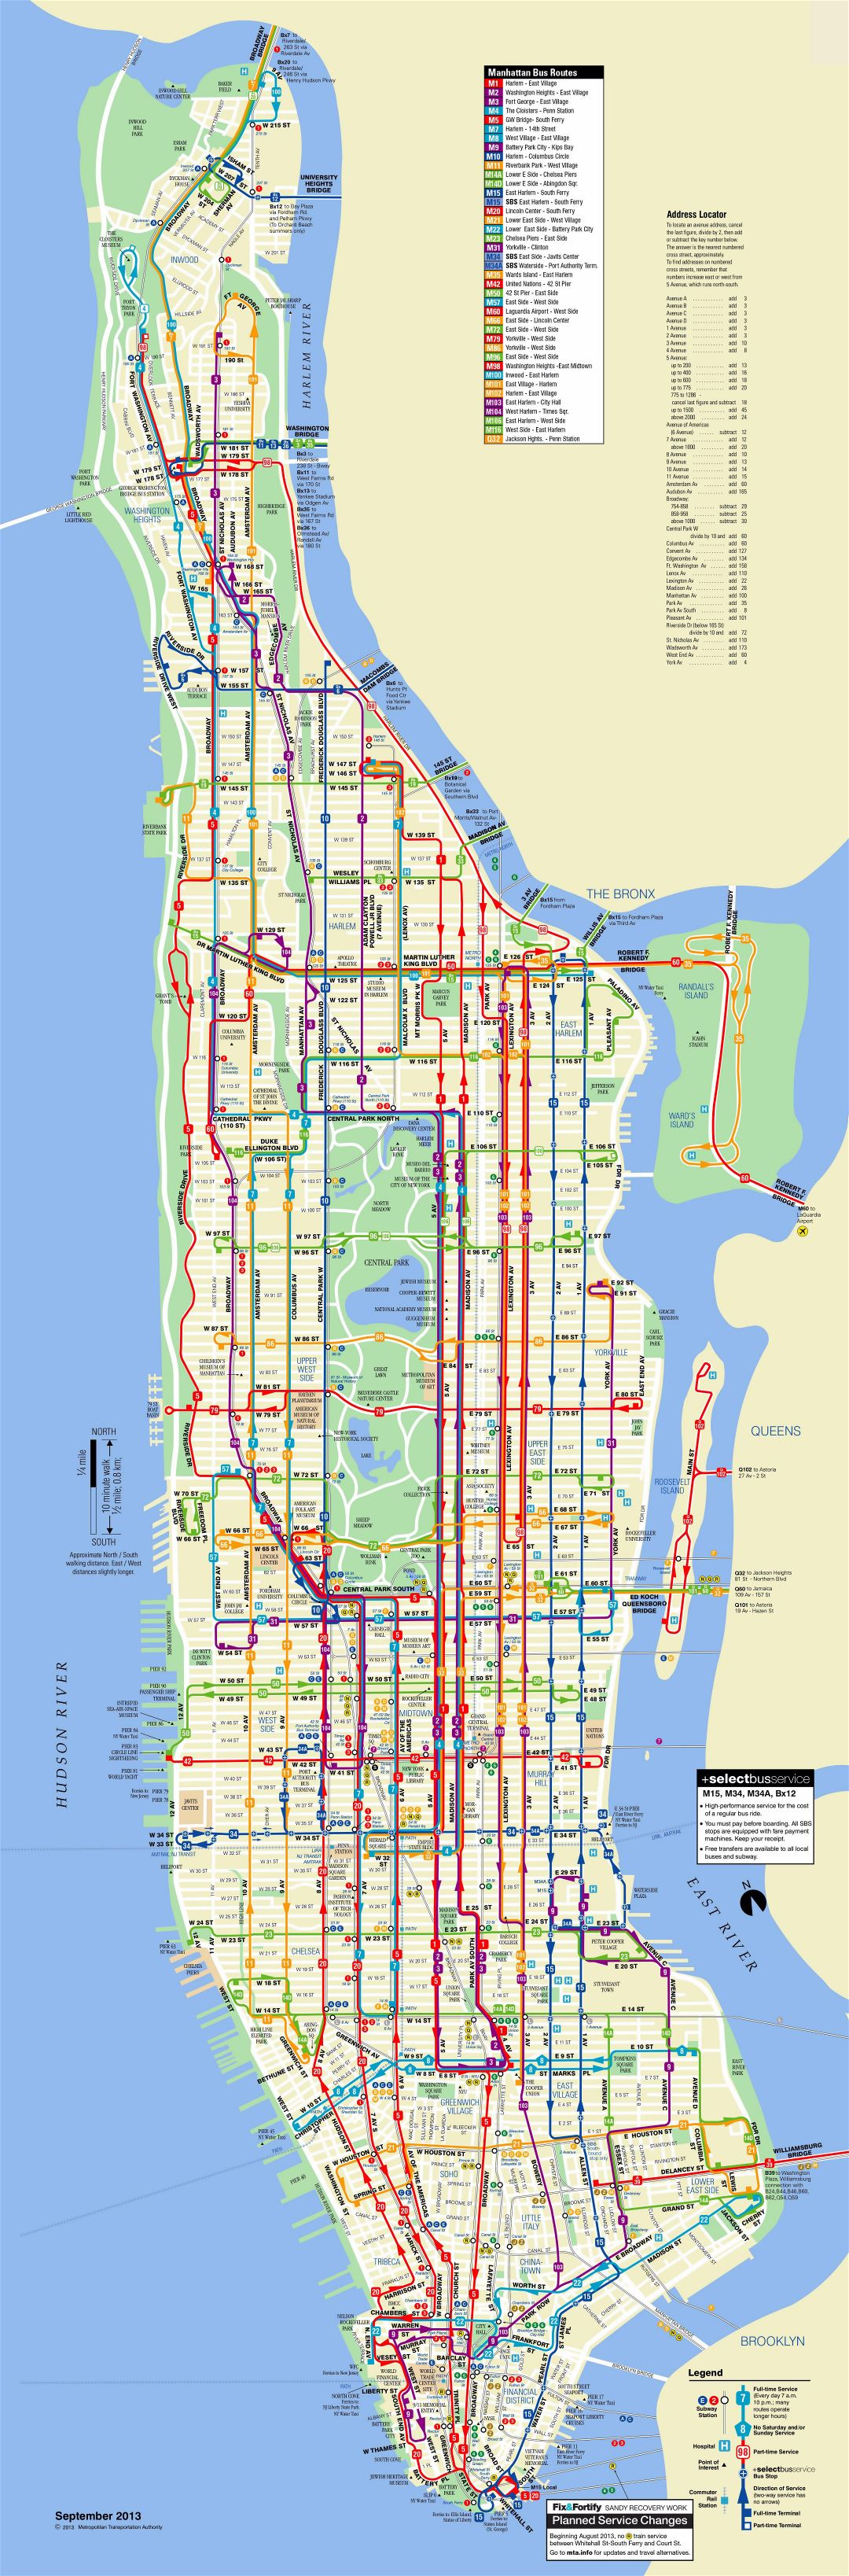 Large scale detailed bus routes map of Manhattan, NYC